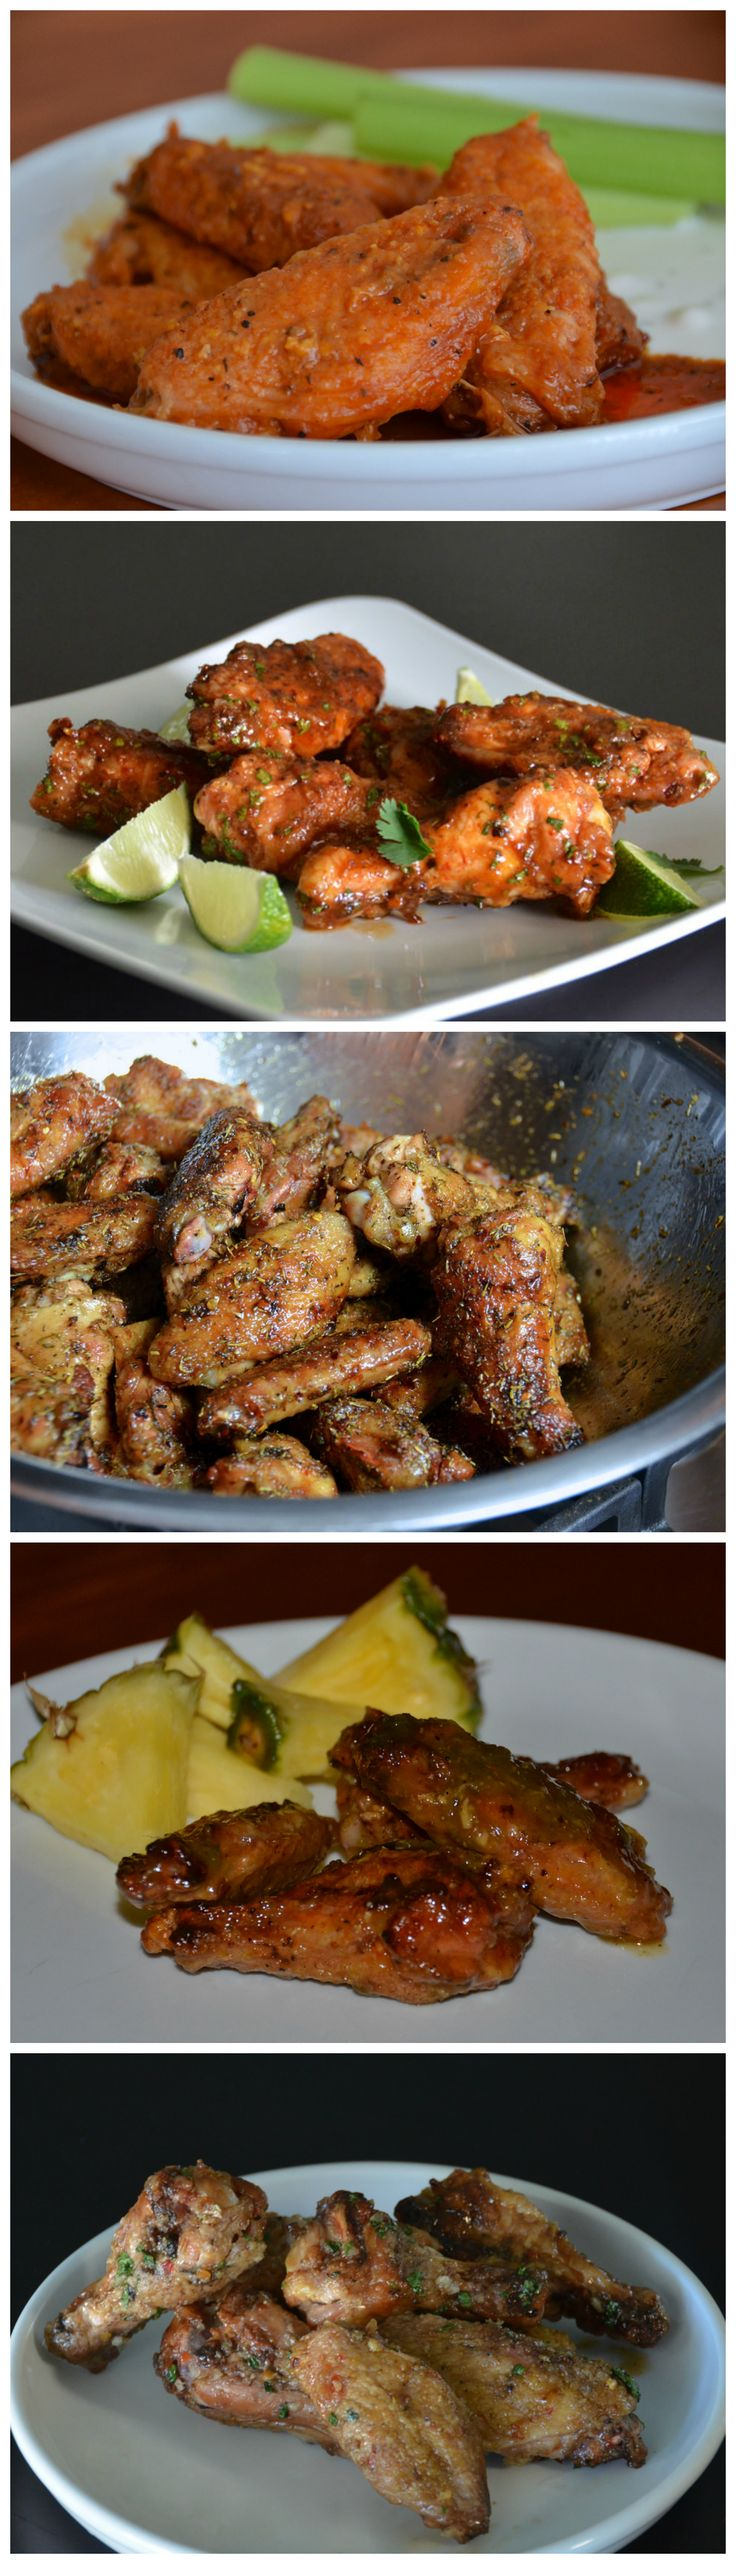 5 chicken wing recipes cooked on the Big Green Egg | Necessary Indulgences